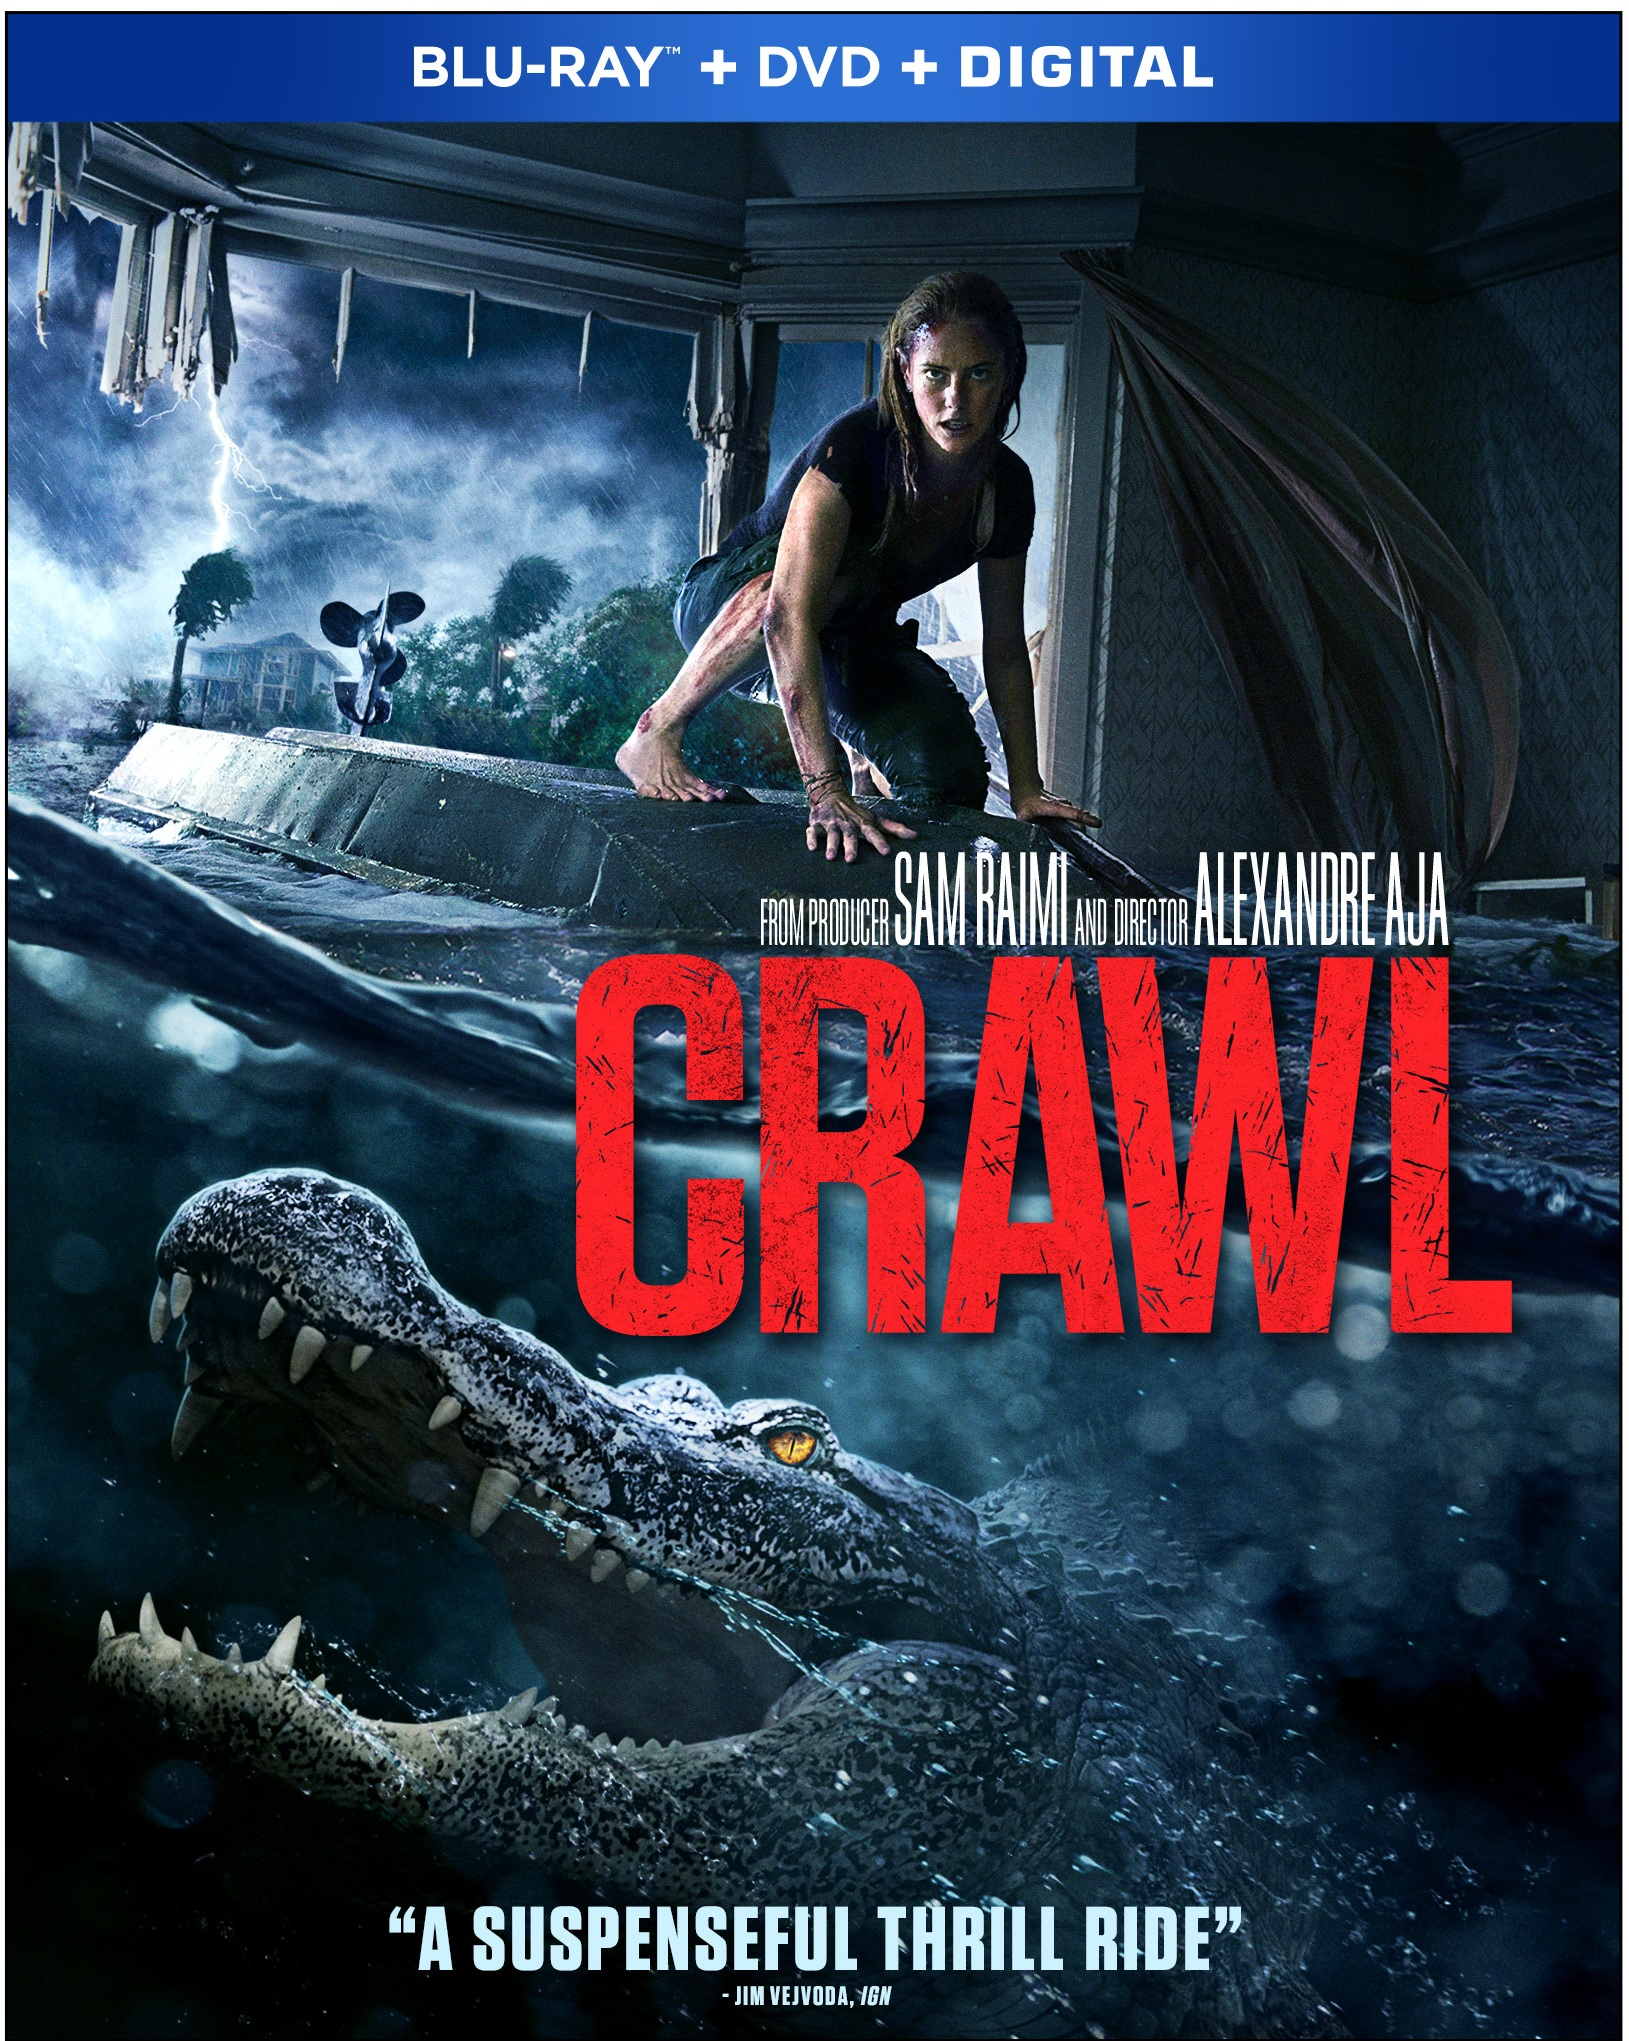 CRAWL Blu-ray